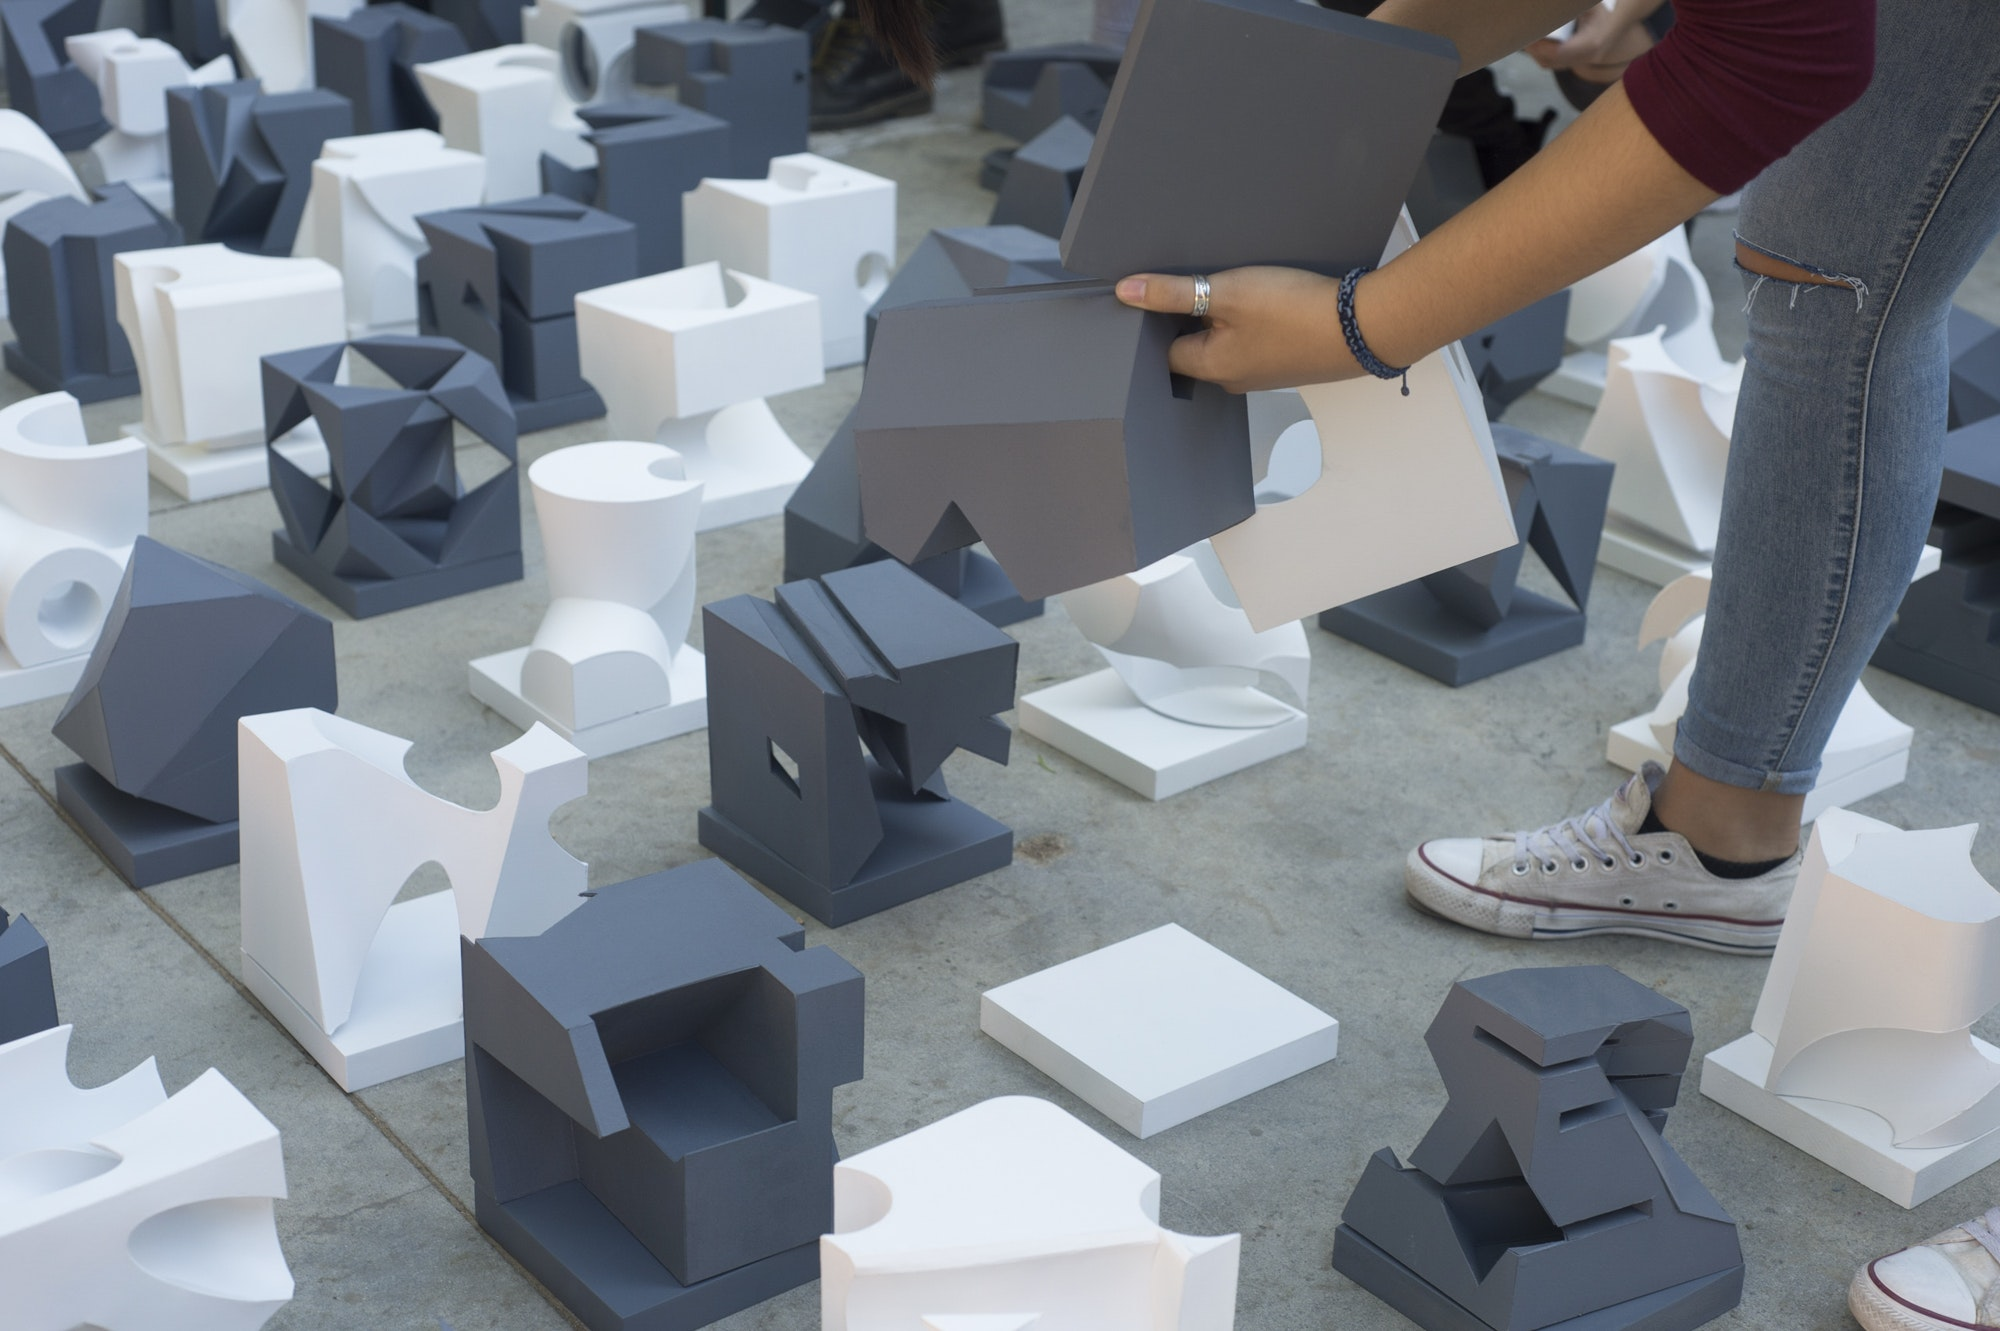 Are You Interested In Transferring To Woodbury School Of Architecture? Our  Bachelor Of Architecture Program Was Recently Ranked 23rd Nationally Out Of  140 ...